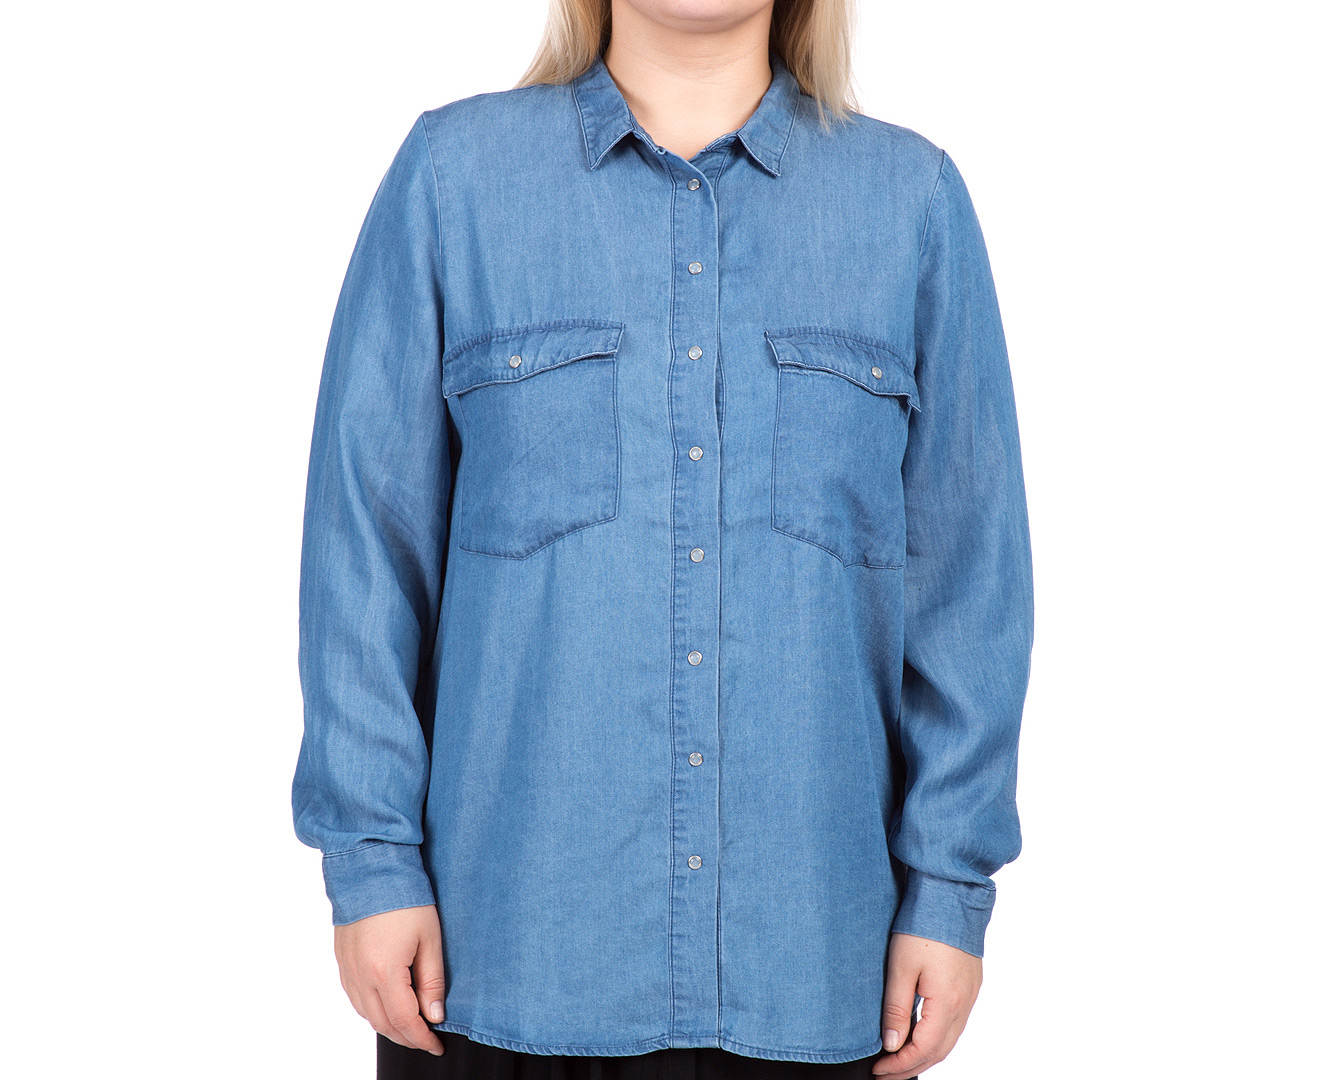 17 sundays women 39 s plus size for Blue chambray shirt women s